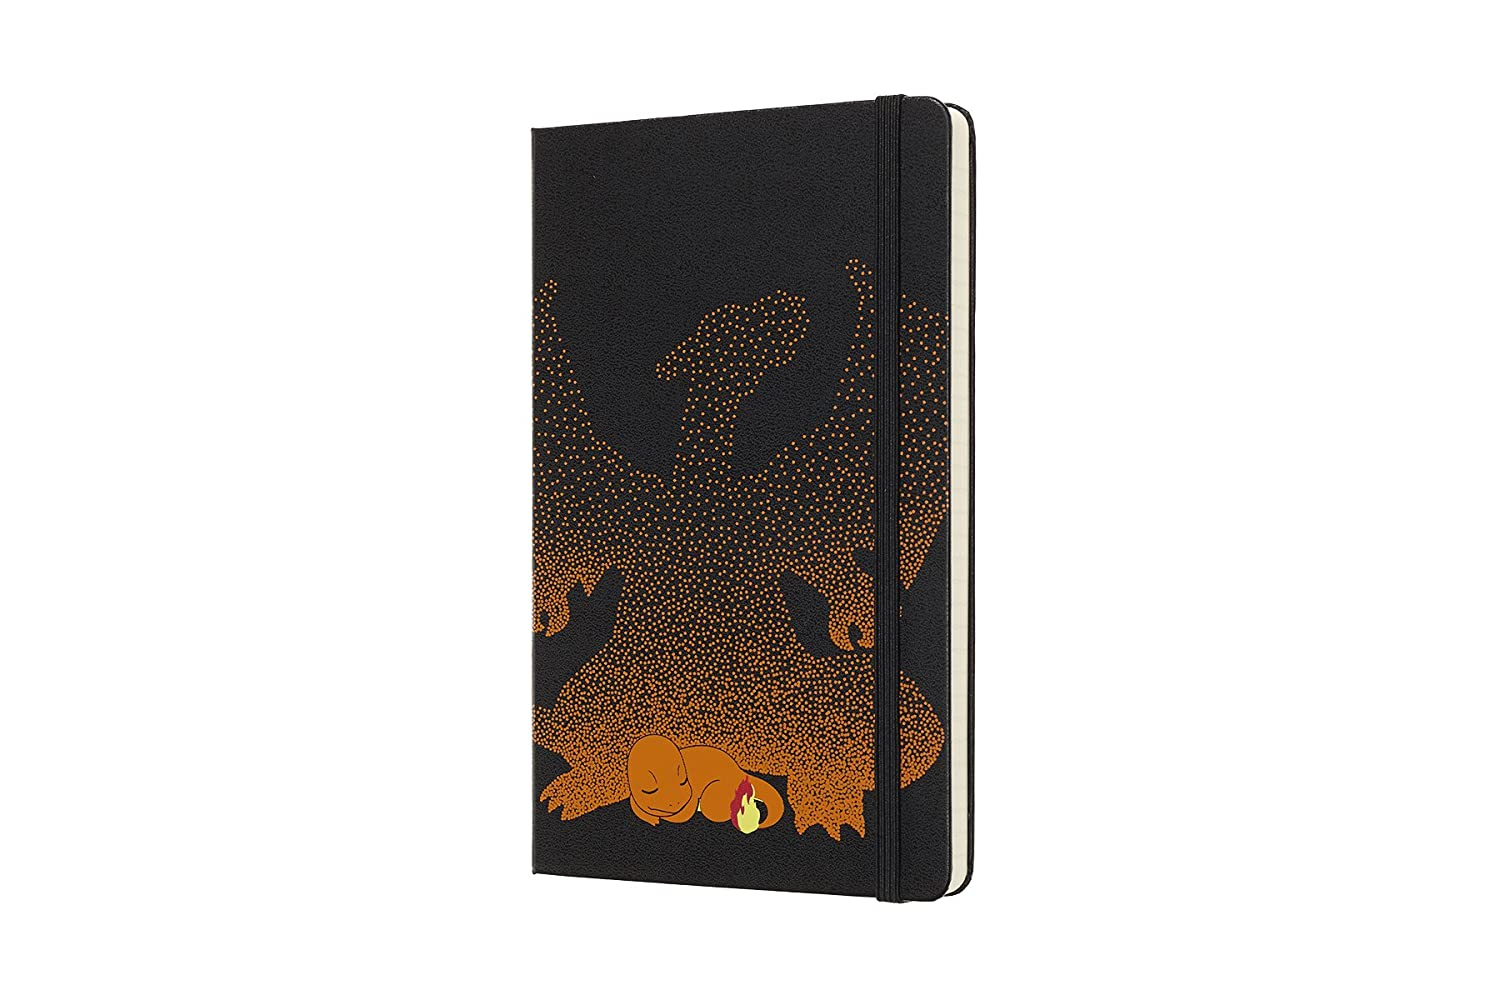 Hard Cover 5 x 8.25 Large Ruled//Lined Moleskine Limited Edition Pok/émon Notebook